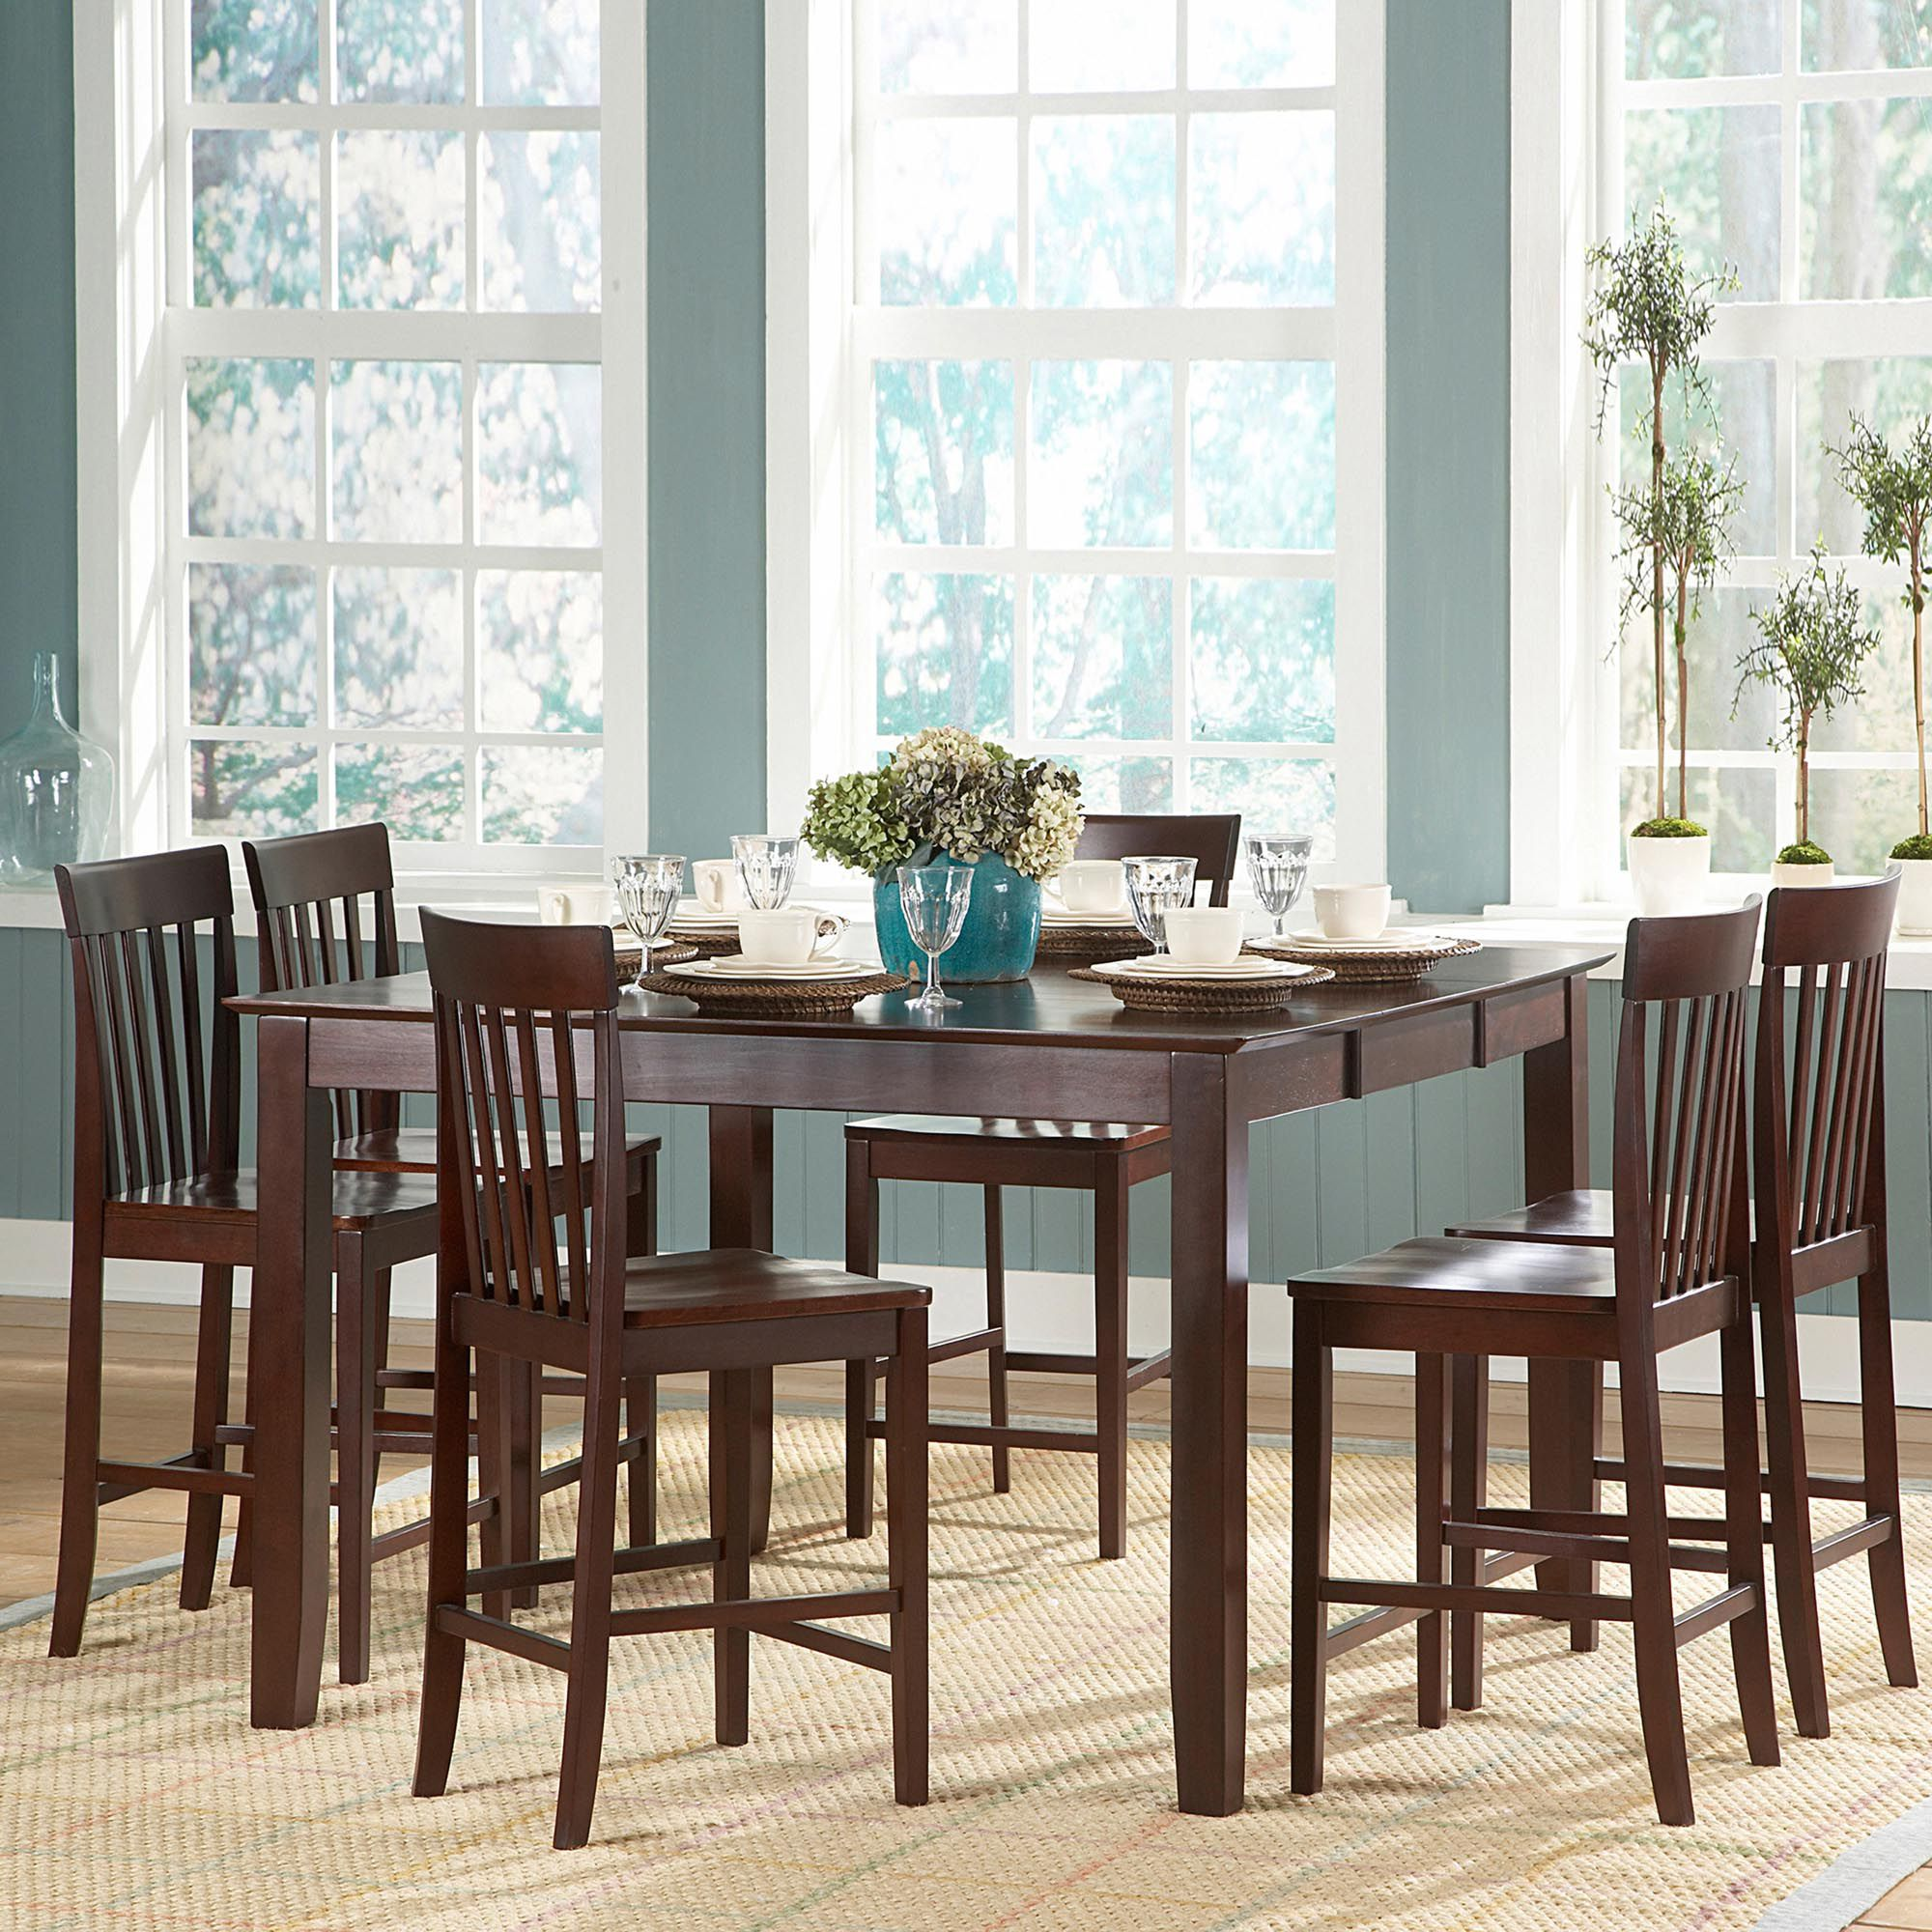 7 pieces Counter Height Table Sets